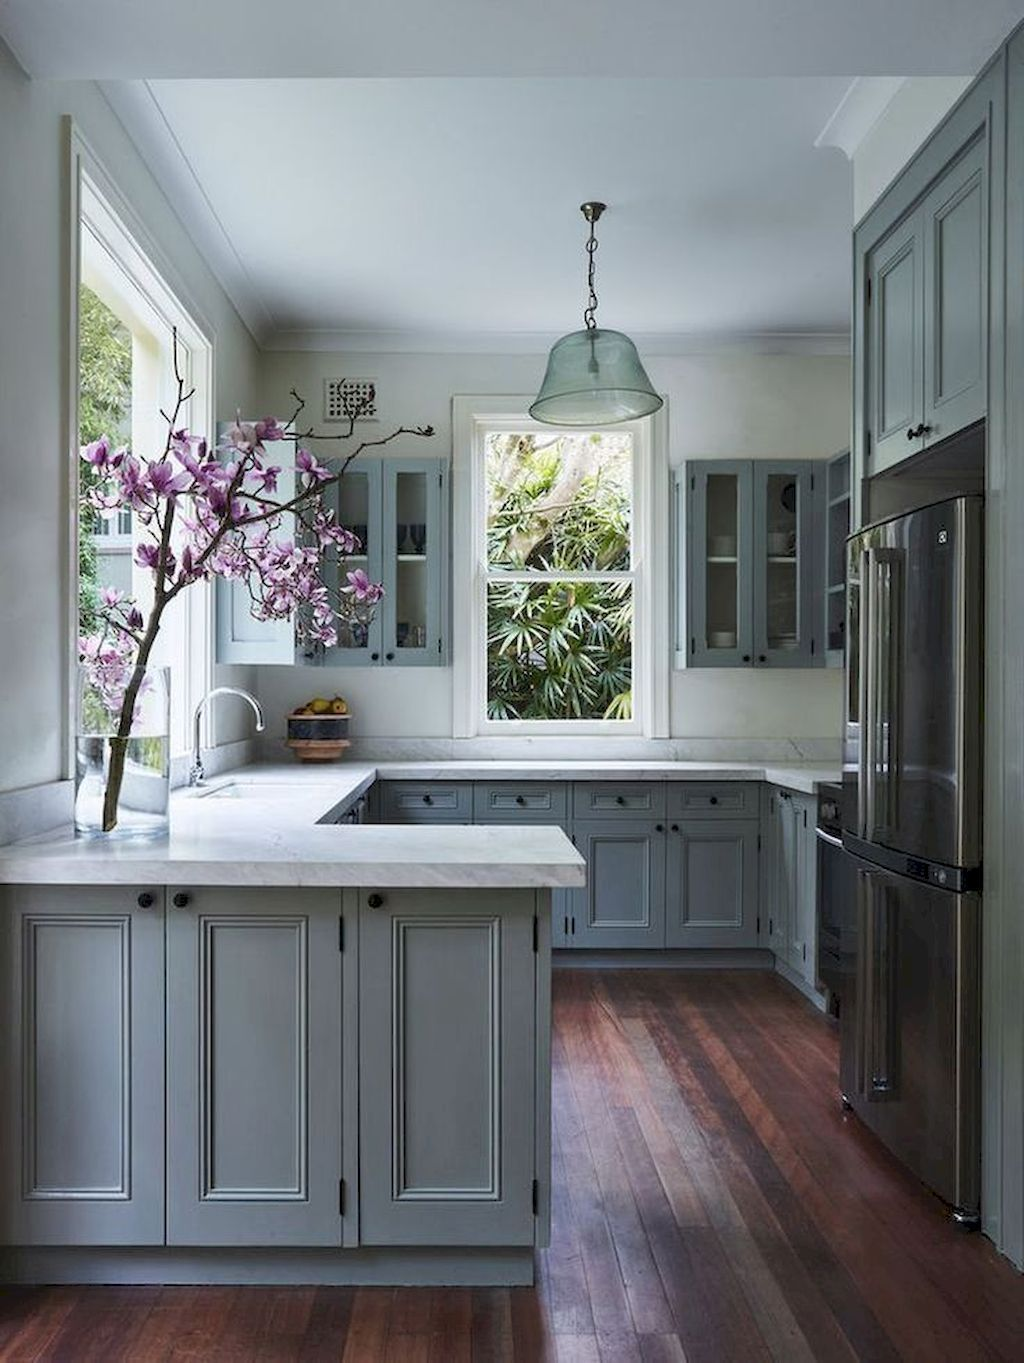 70 Modern Farmhouse Kitchen Cabinet Makeover Design Ideas Bilgiajandam Org Interior Bilgiajan In 2020 Kitchen Remodel Small Kitchen Design Farmhouse Kitchen Cabinets